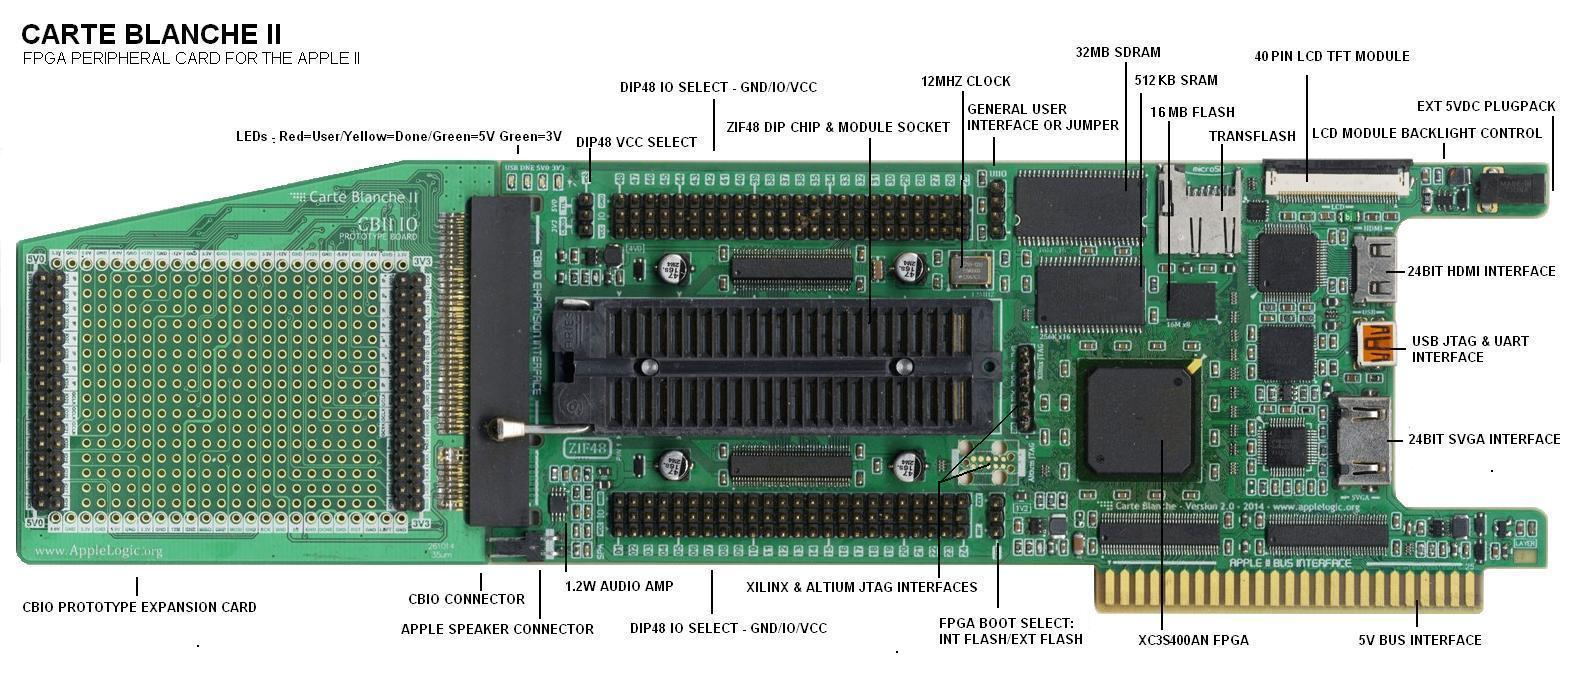 Basic Motherboard Diagram Electrical Wiring Diagrams Computer Cables Electricity With Labels Missing